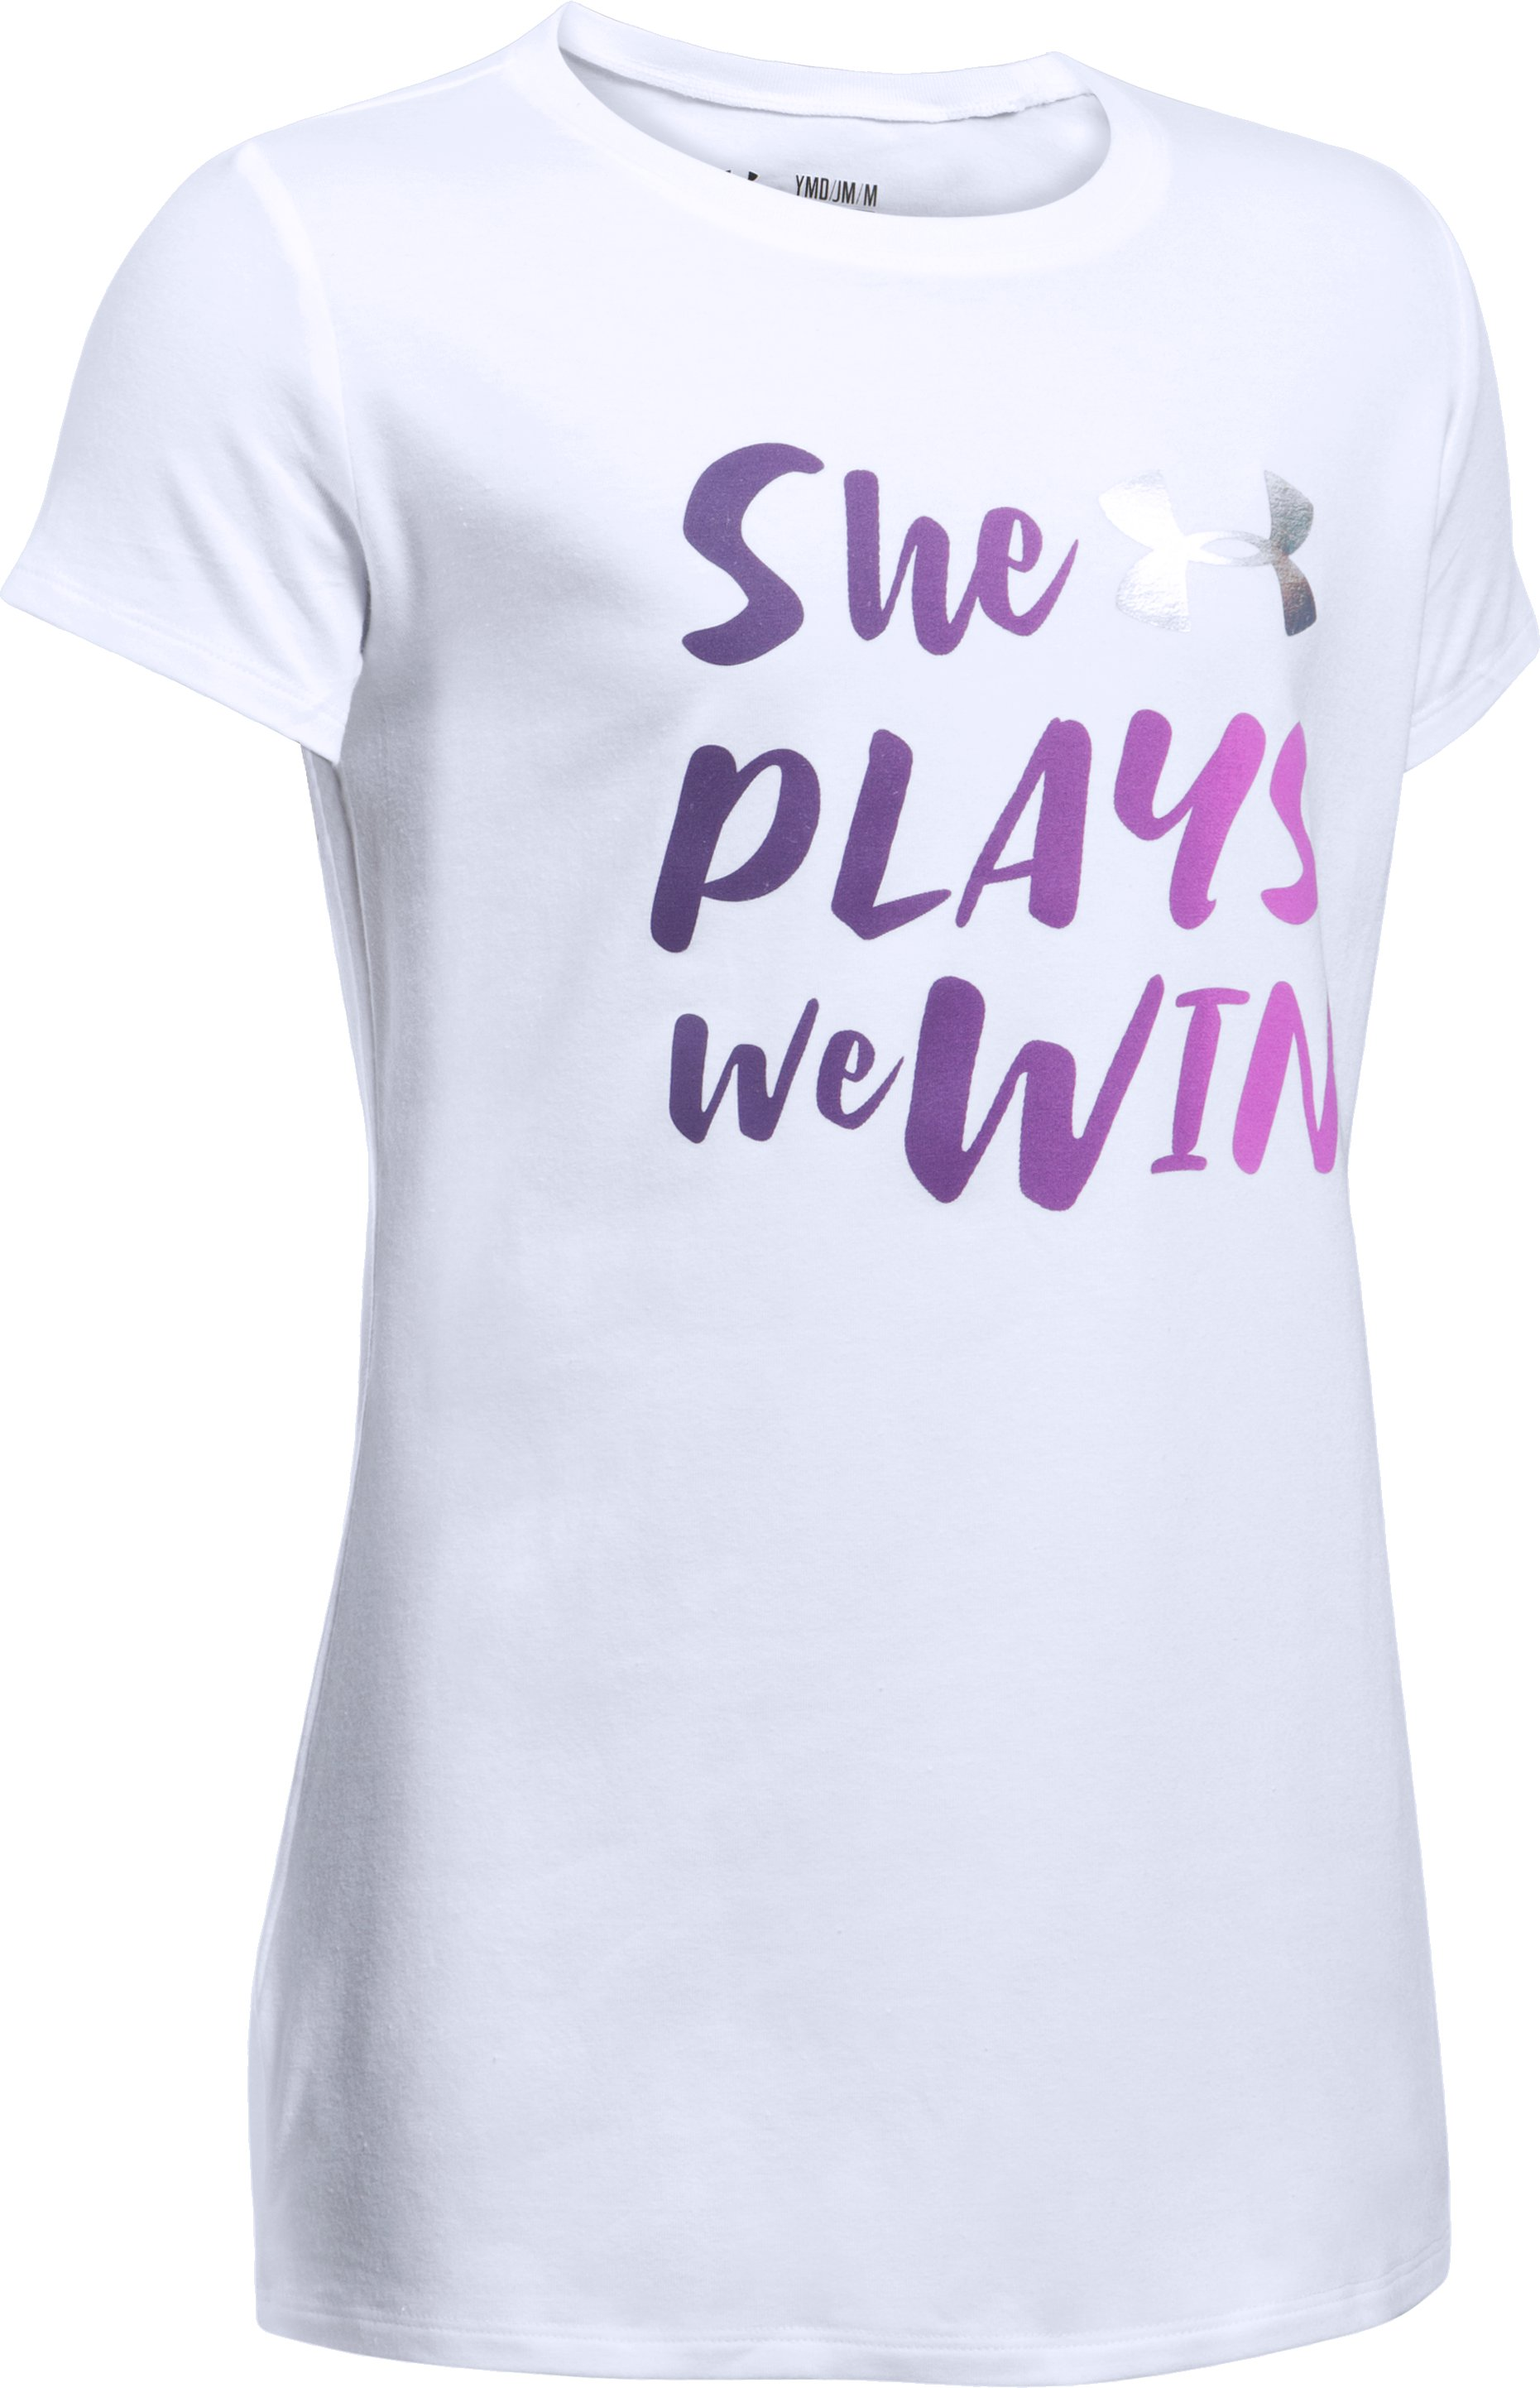 She Plays We Win T-Shirt, White